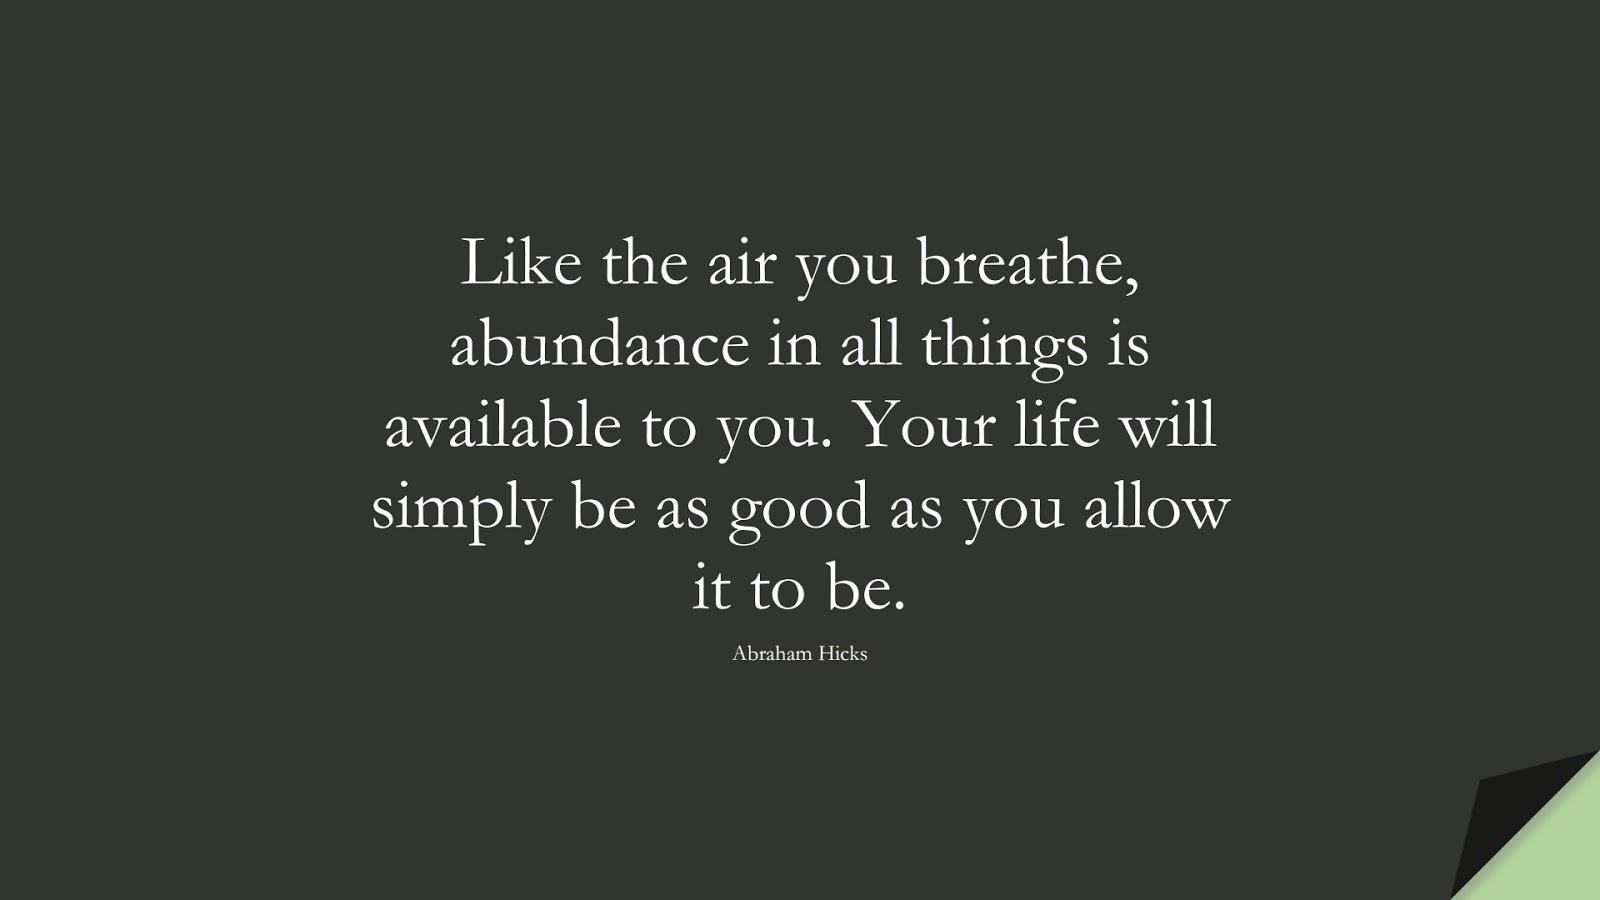 Like the air you breathe, abundance in all things is available to you. Your life will simply be as good as you allow it to be. (Abraham Hicks);  #MoneyQuotes